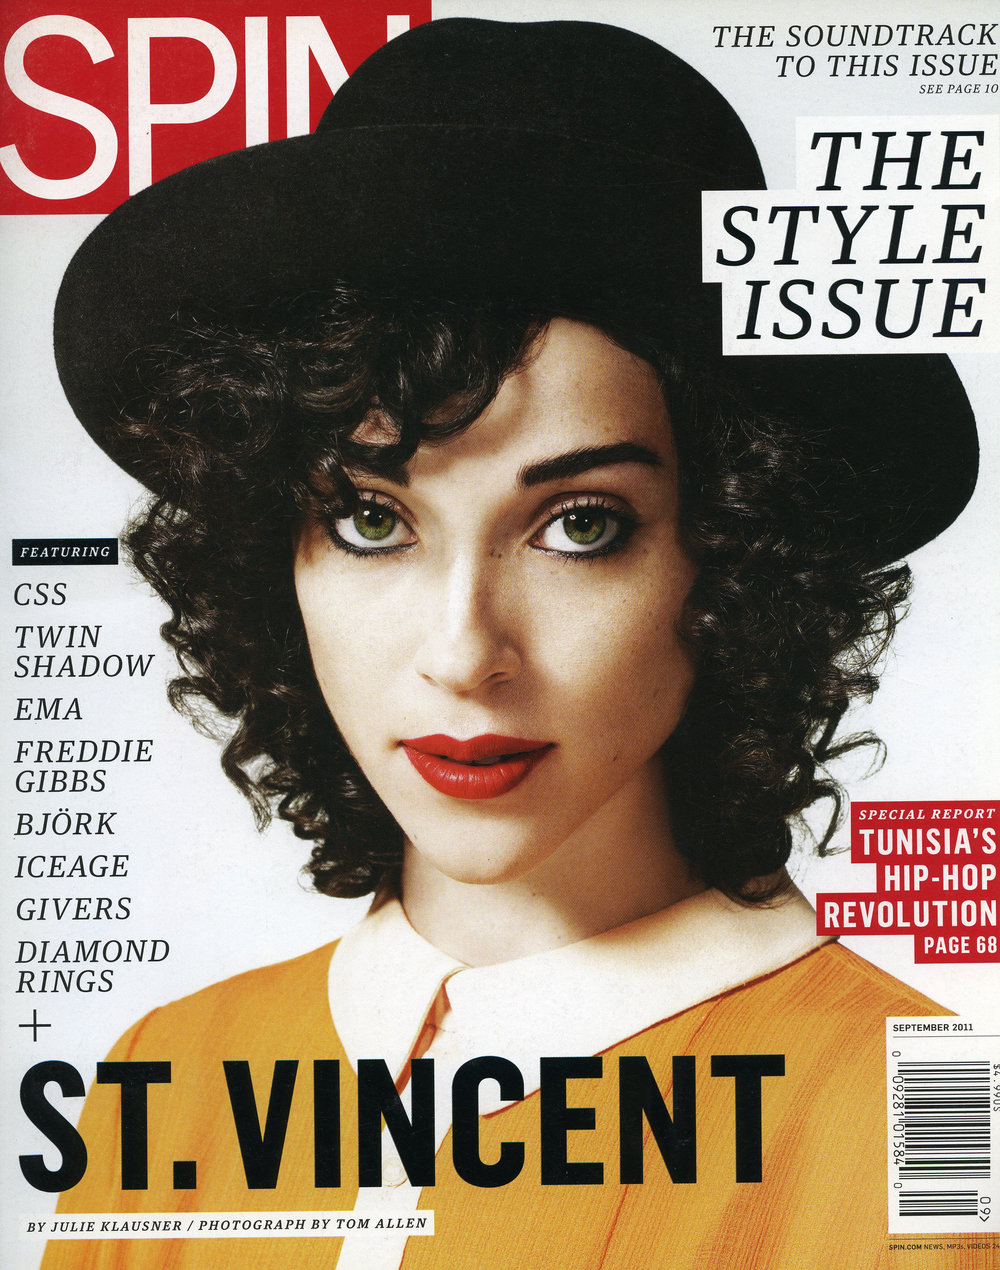 ST-Vincent-spin-cover copy.jpg